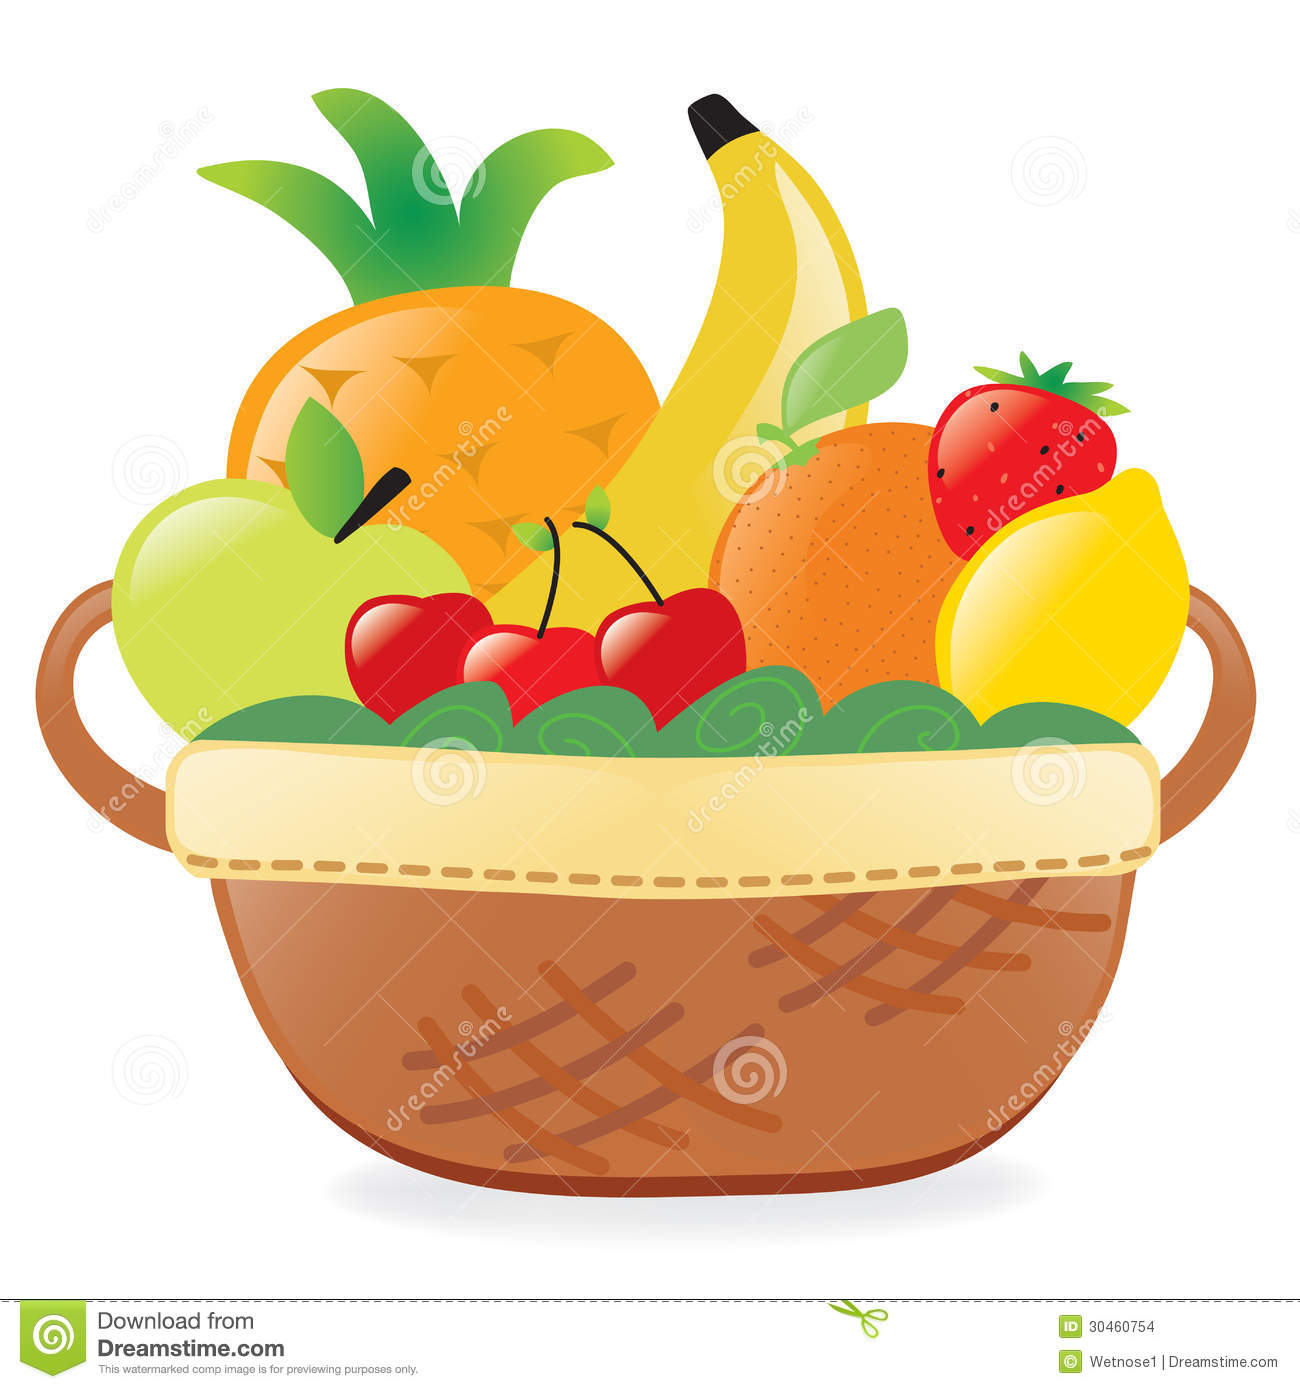 Fruits In A Basket Stock Images - Image: 30460754